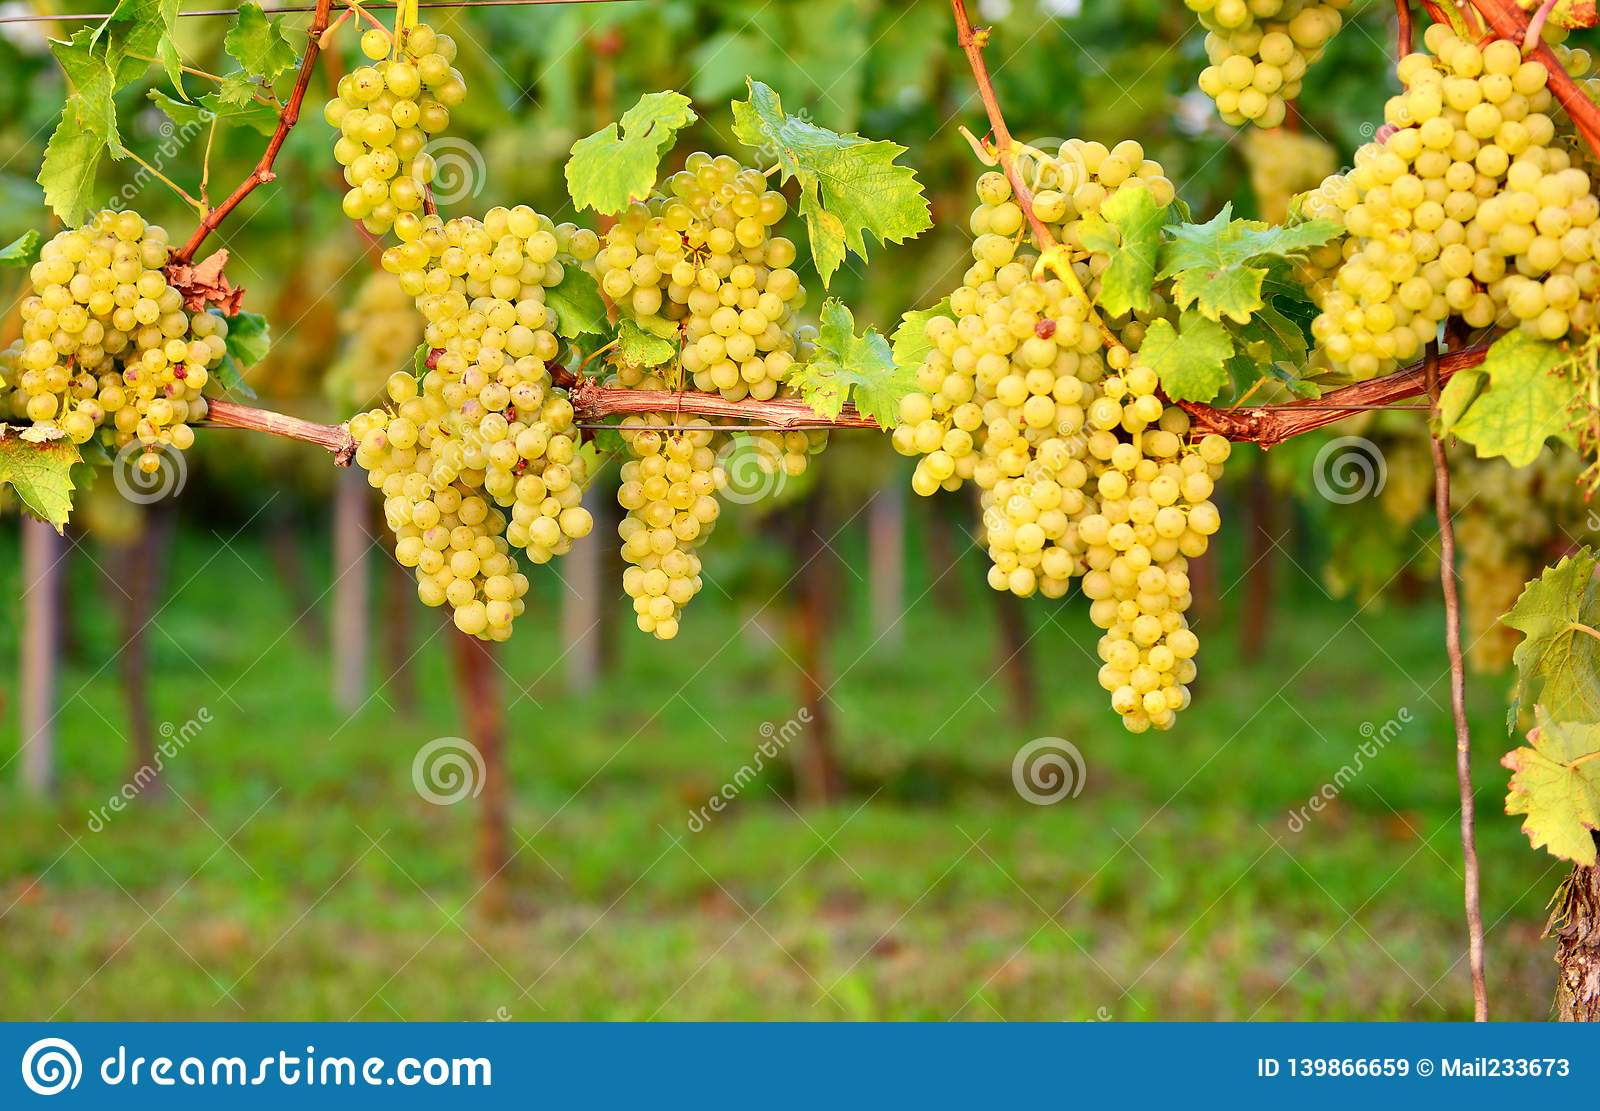 White Grapes in Autumn